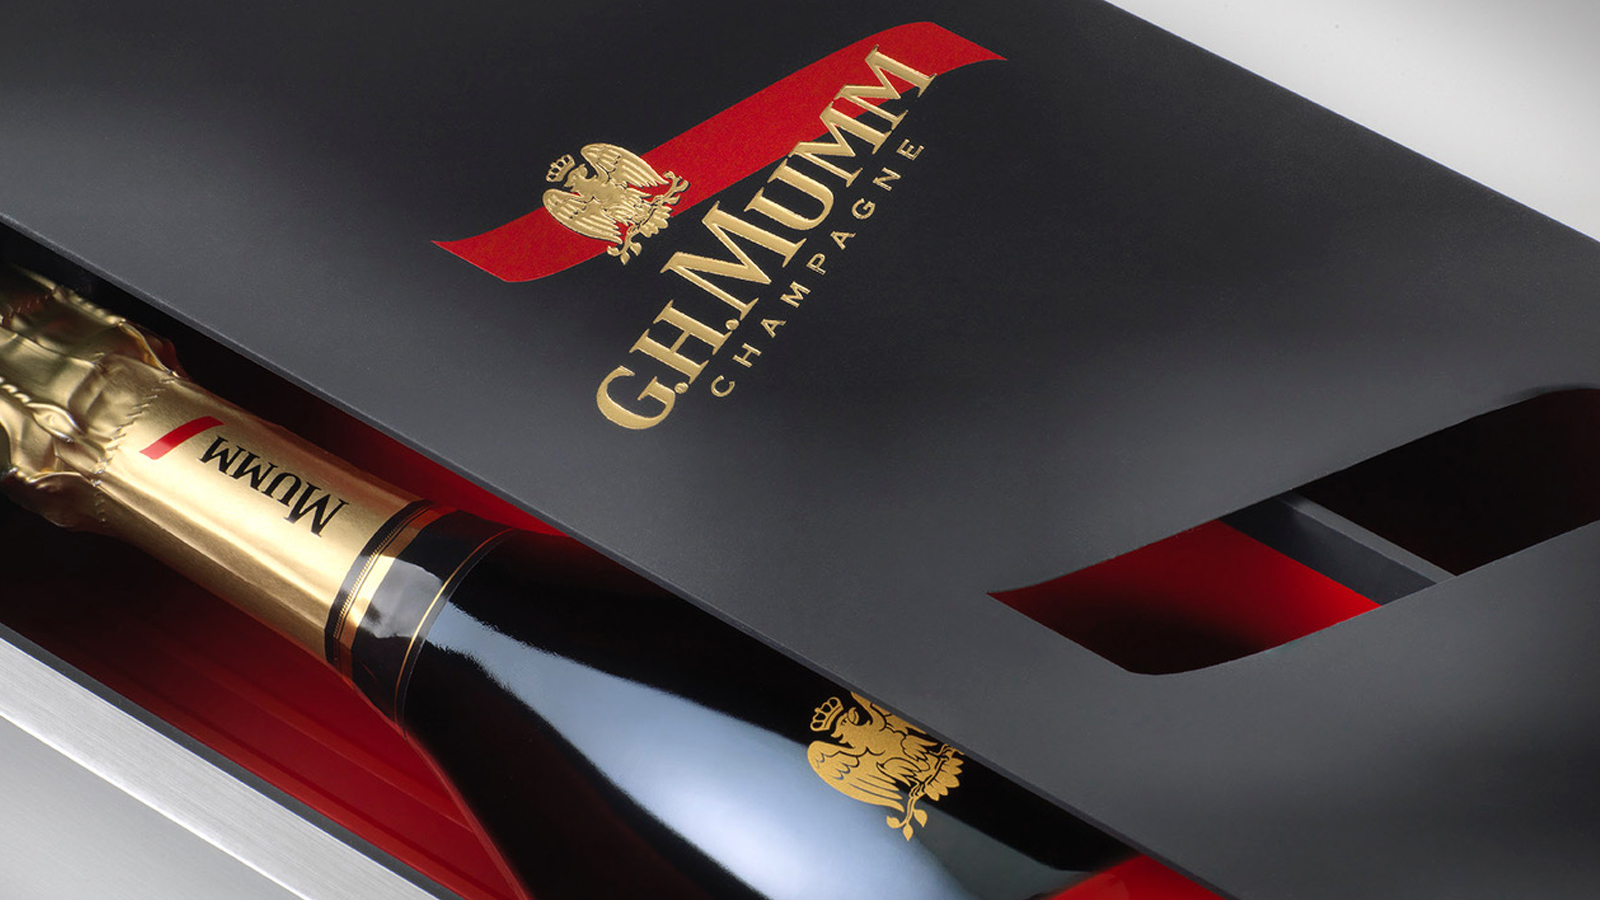 04 -2S_MUMM CHAMPAGNE-Design-global.jpg